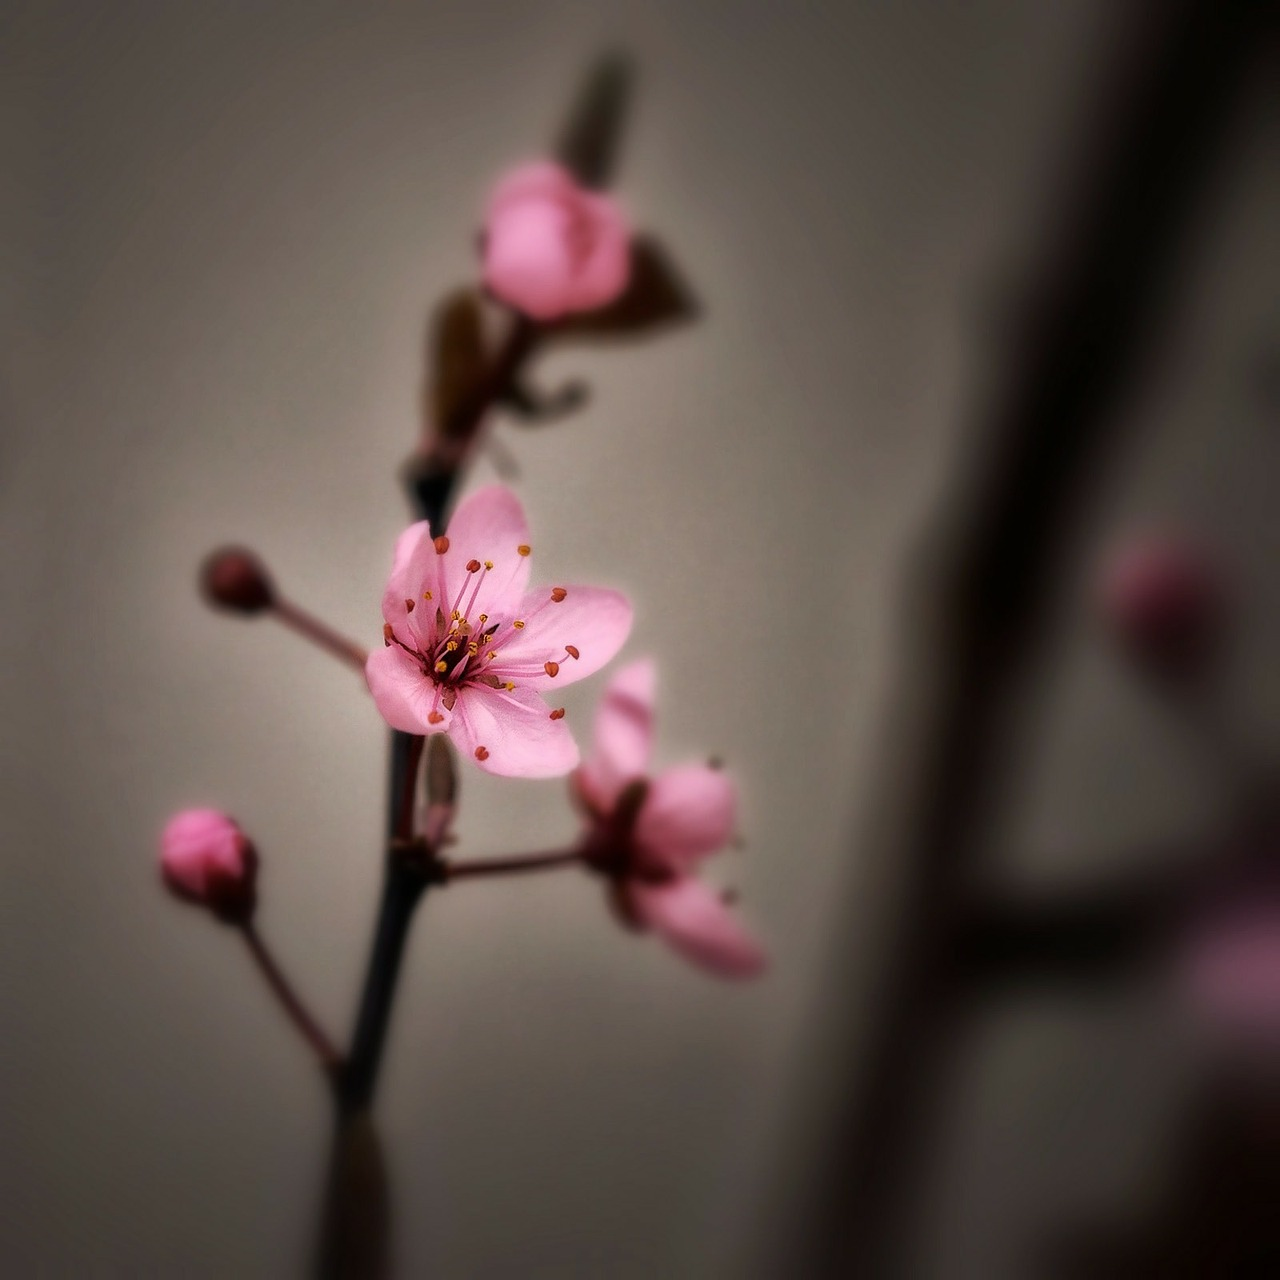 Cherry blossoms dating promo code